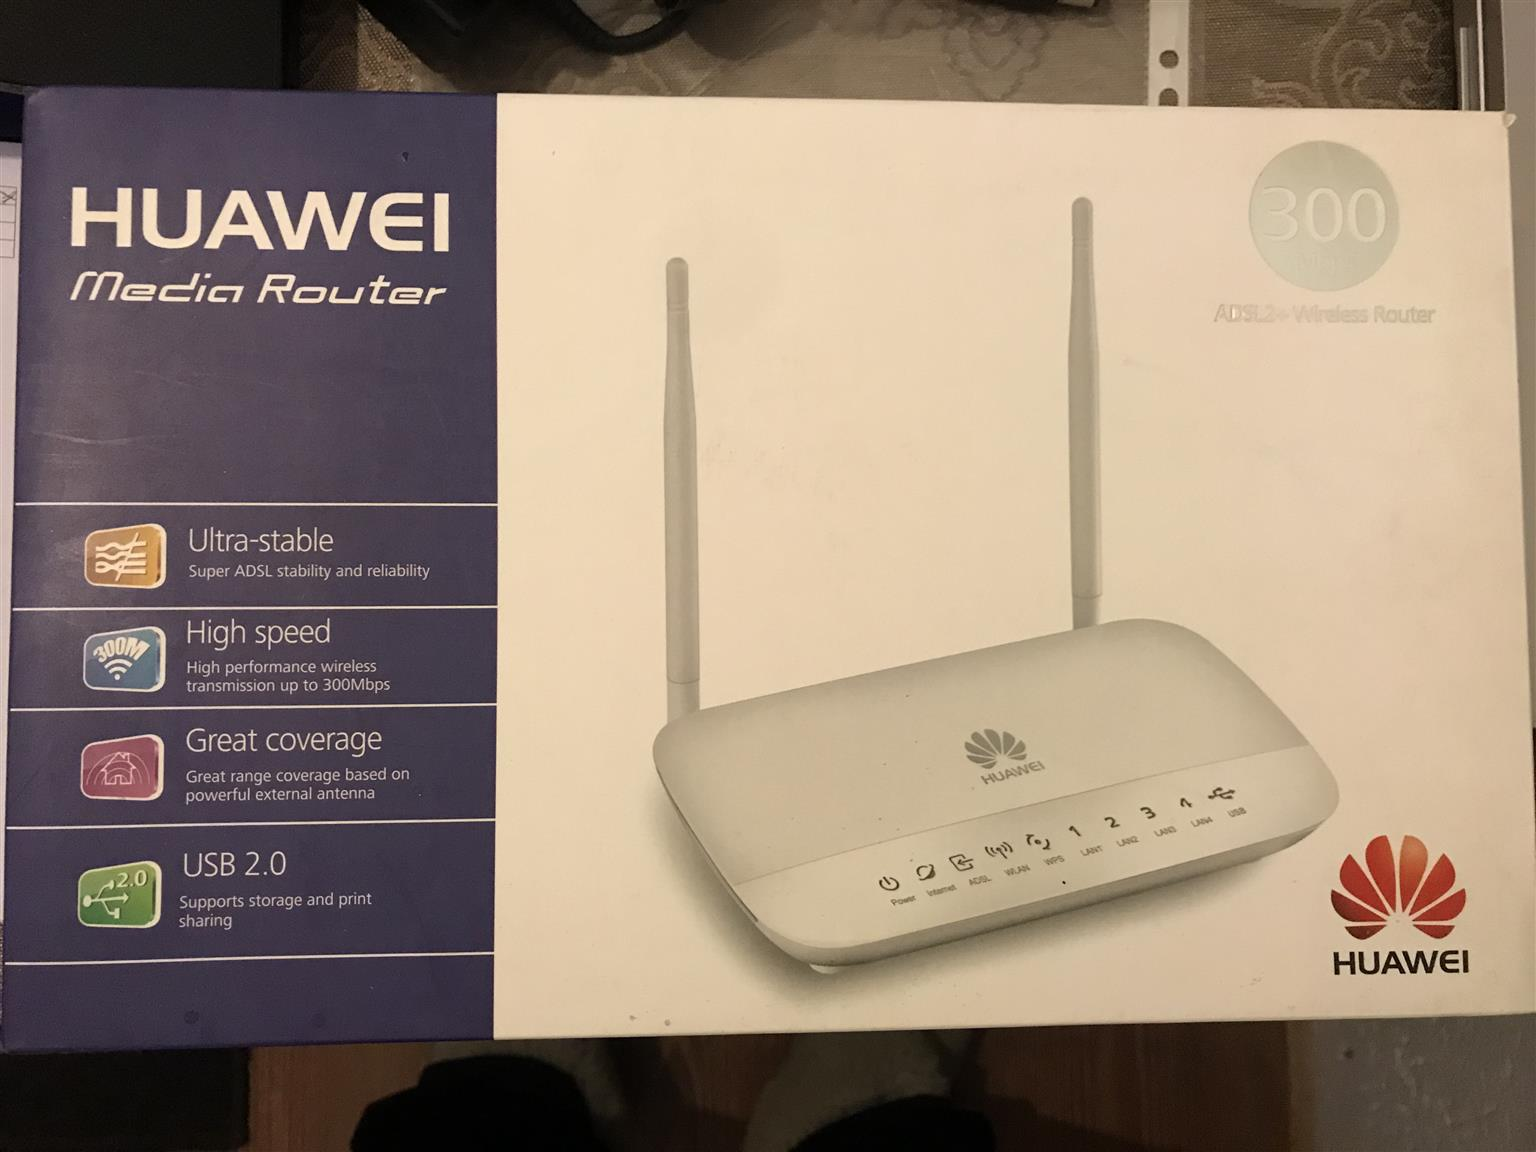 Huawei 300 MB Ultra-Stable High Speed ADSL Media Route